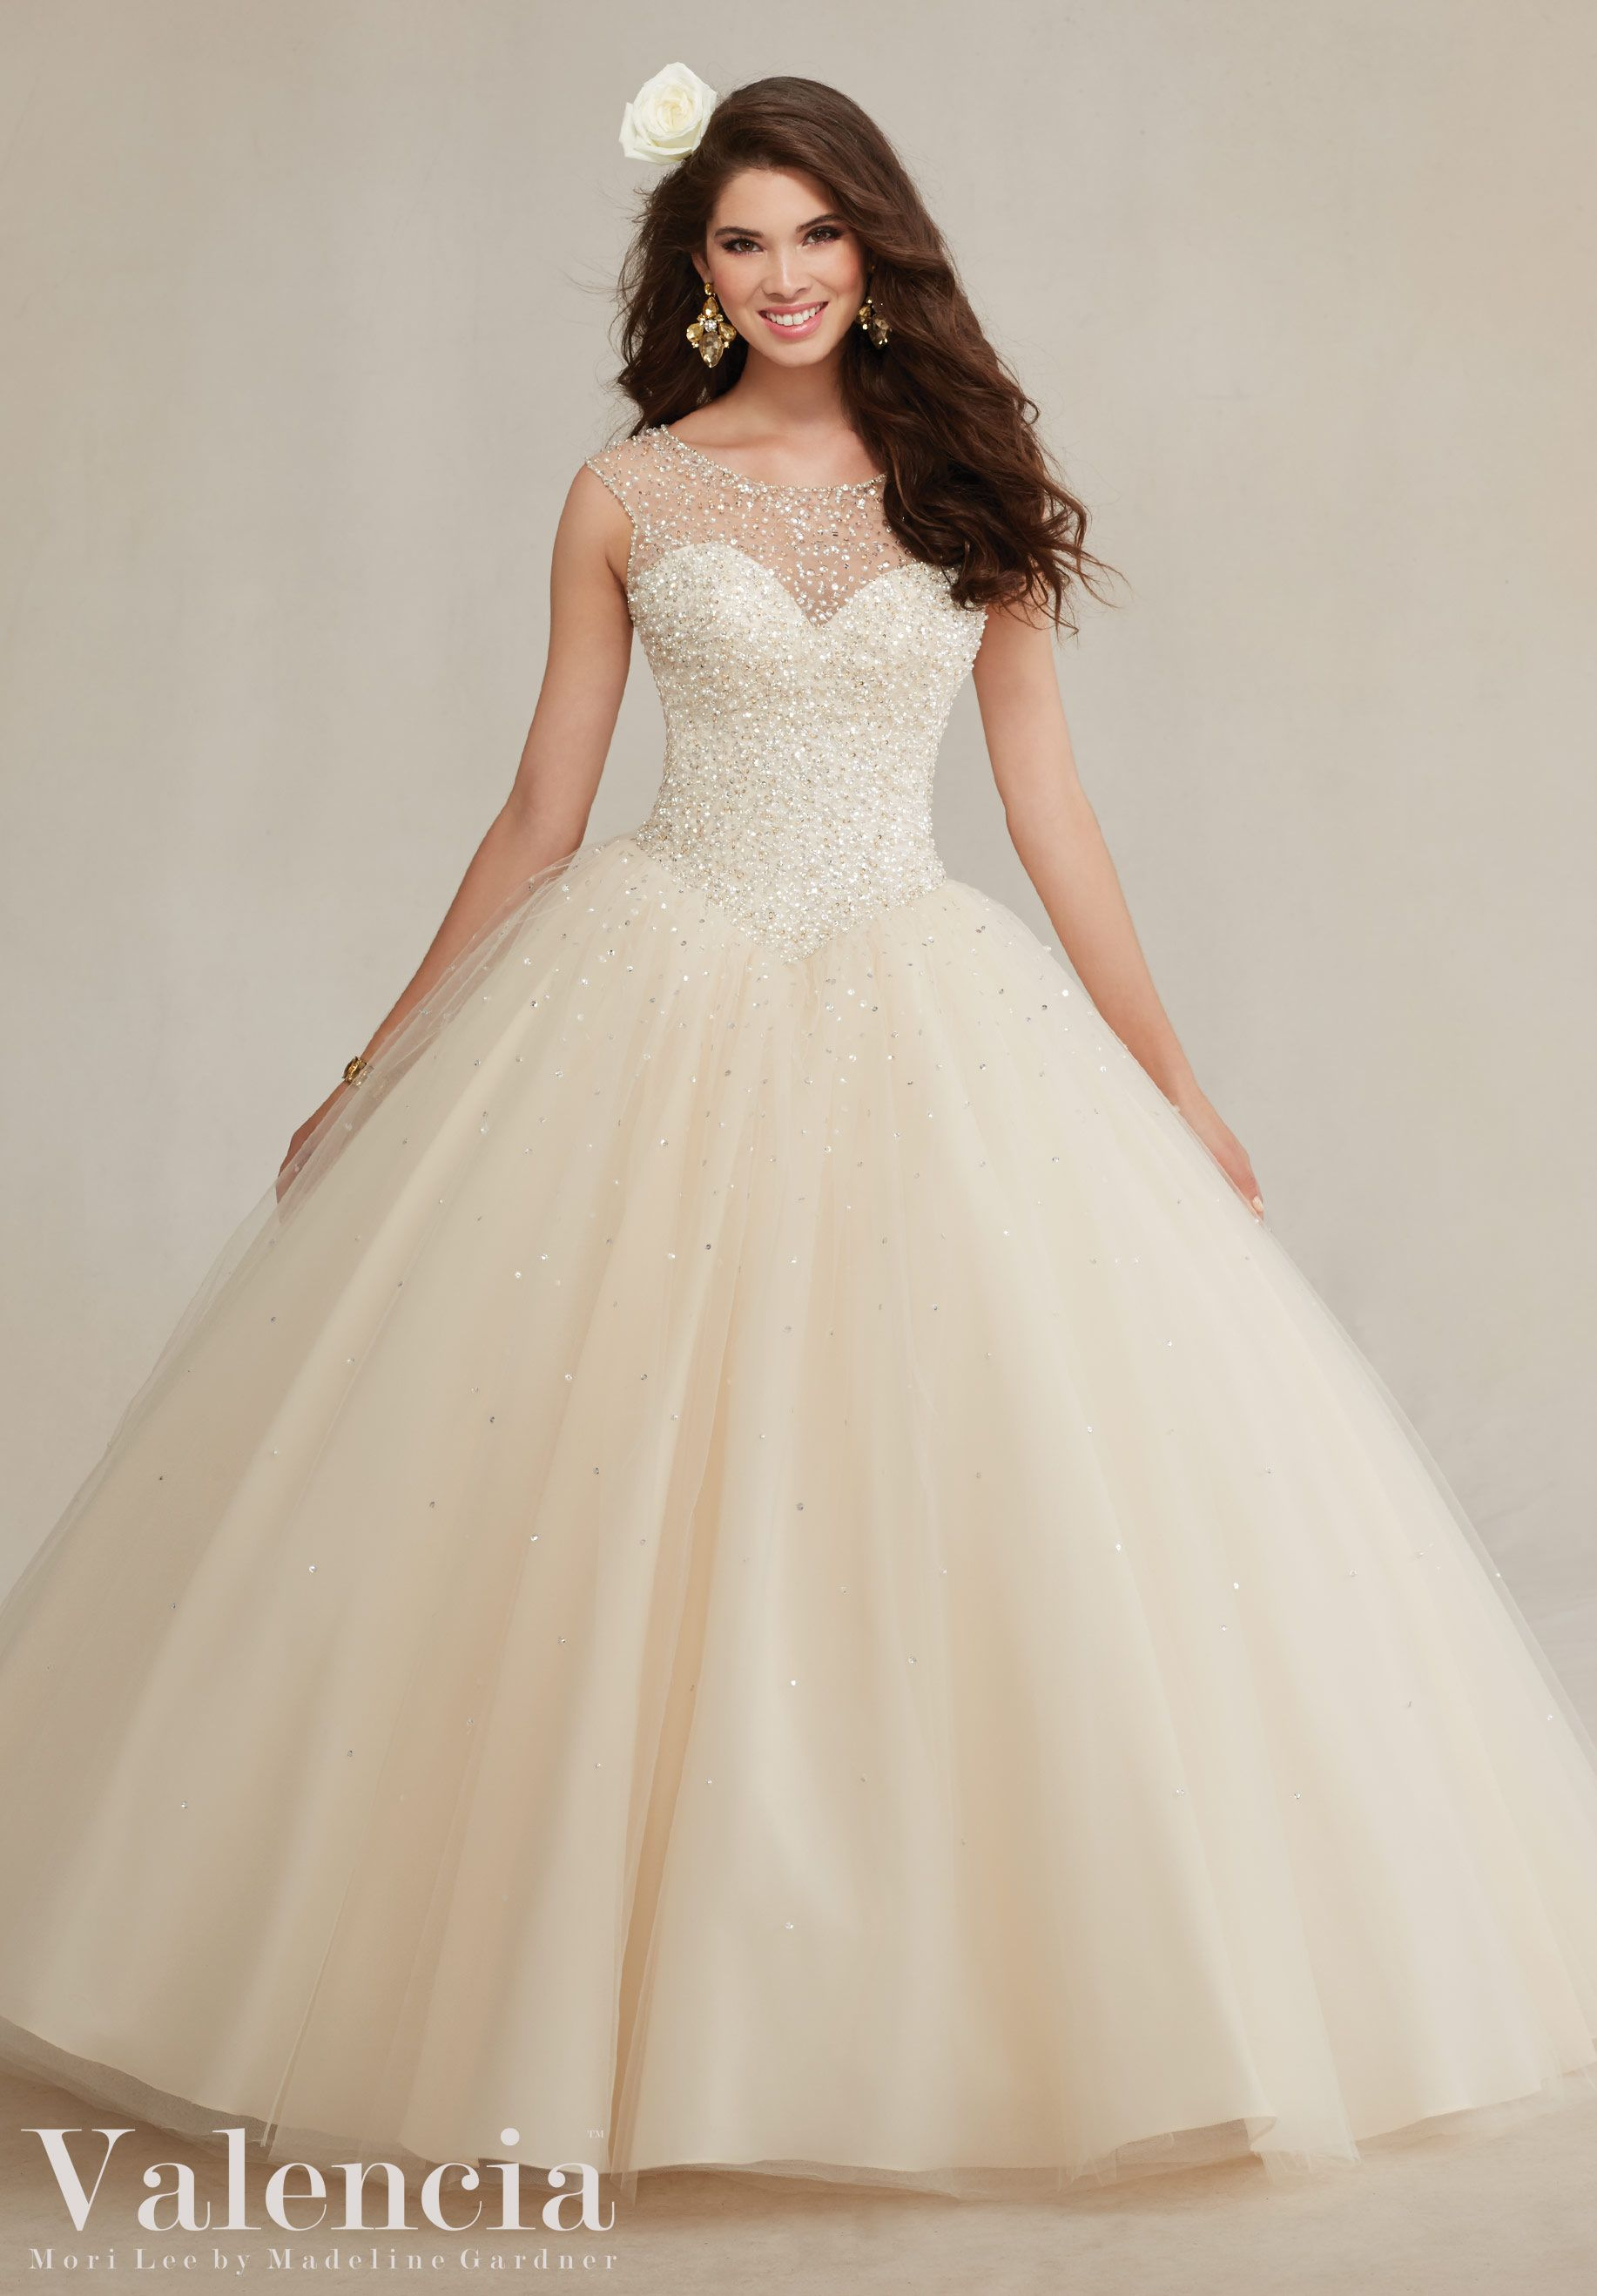 c26e3aa4af6 Quinceanera dresses by Vizcaya Beaded Tulle Ball Gown Matching Stole  included. Colors  Mint Leaf